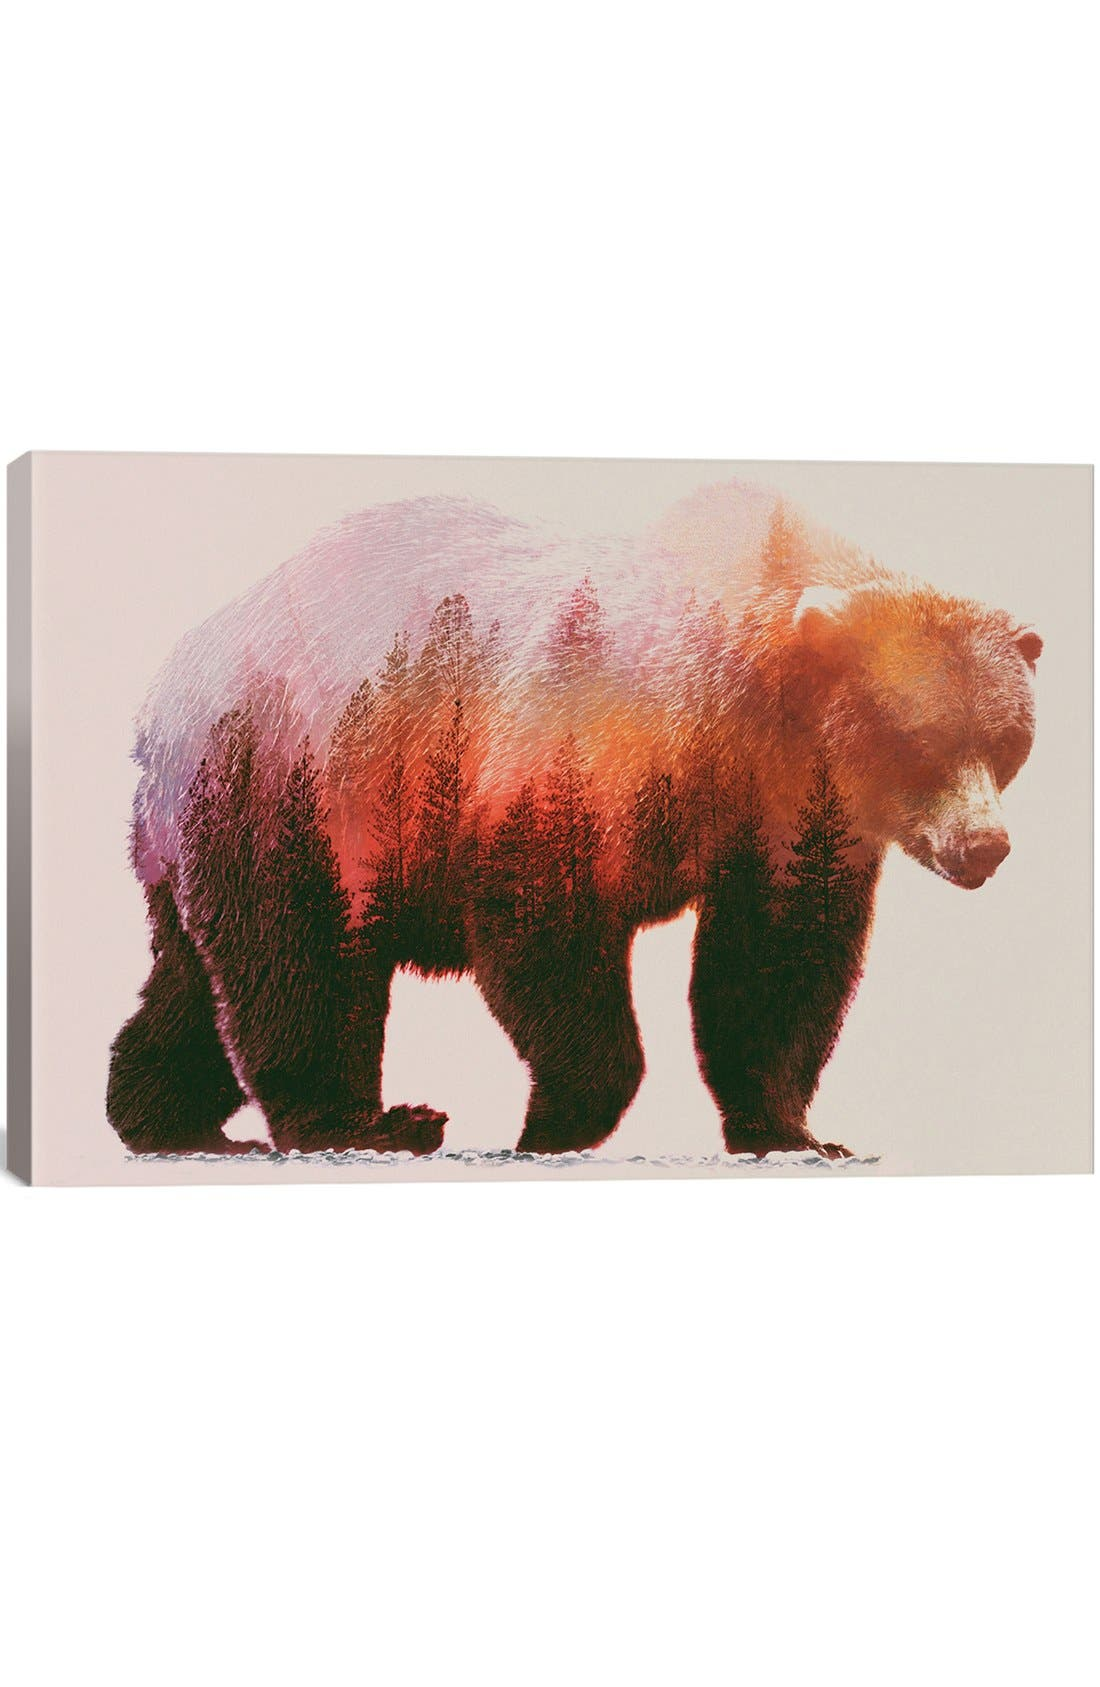 Alternate Image 1 Selected - iCanvas 'Brown Bear' Giclée Print Canvas Art